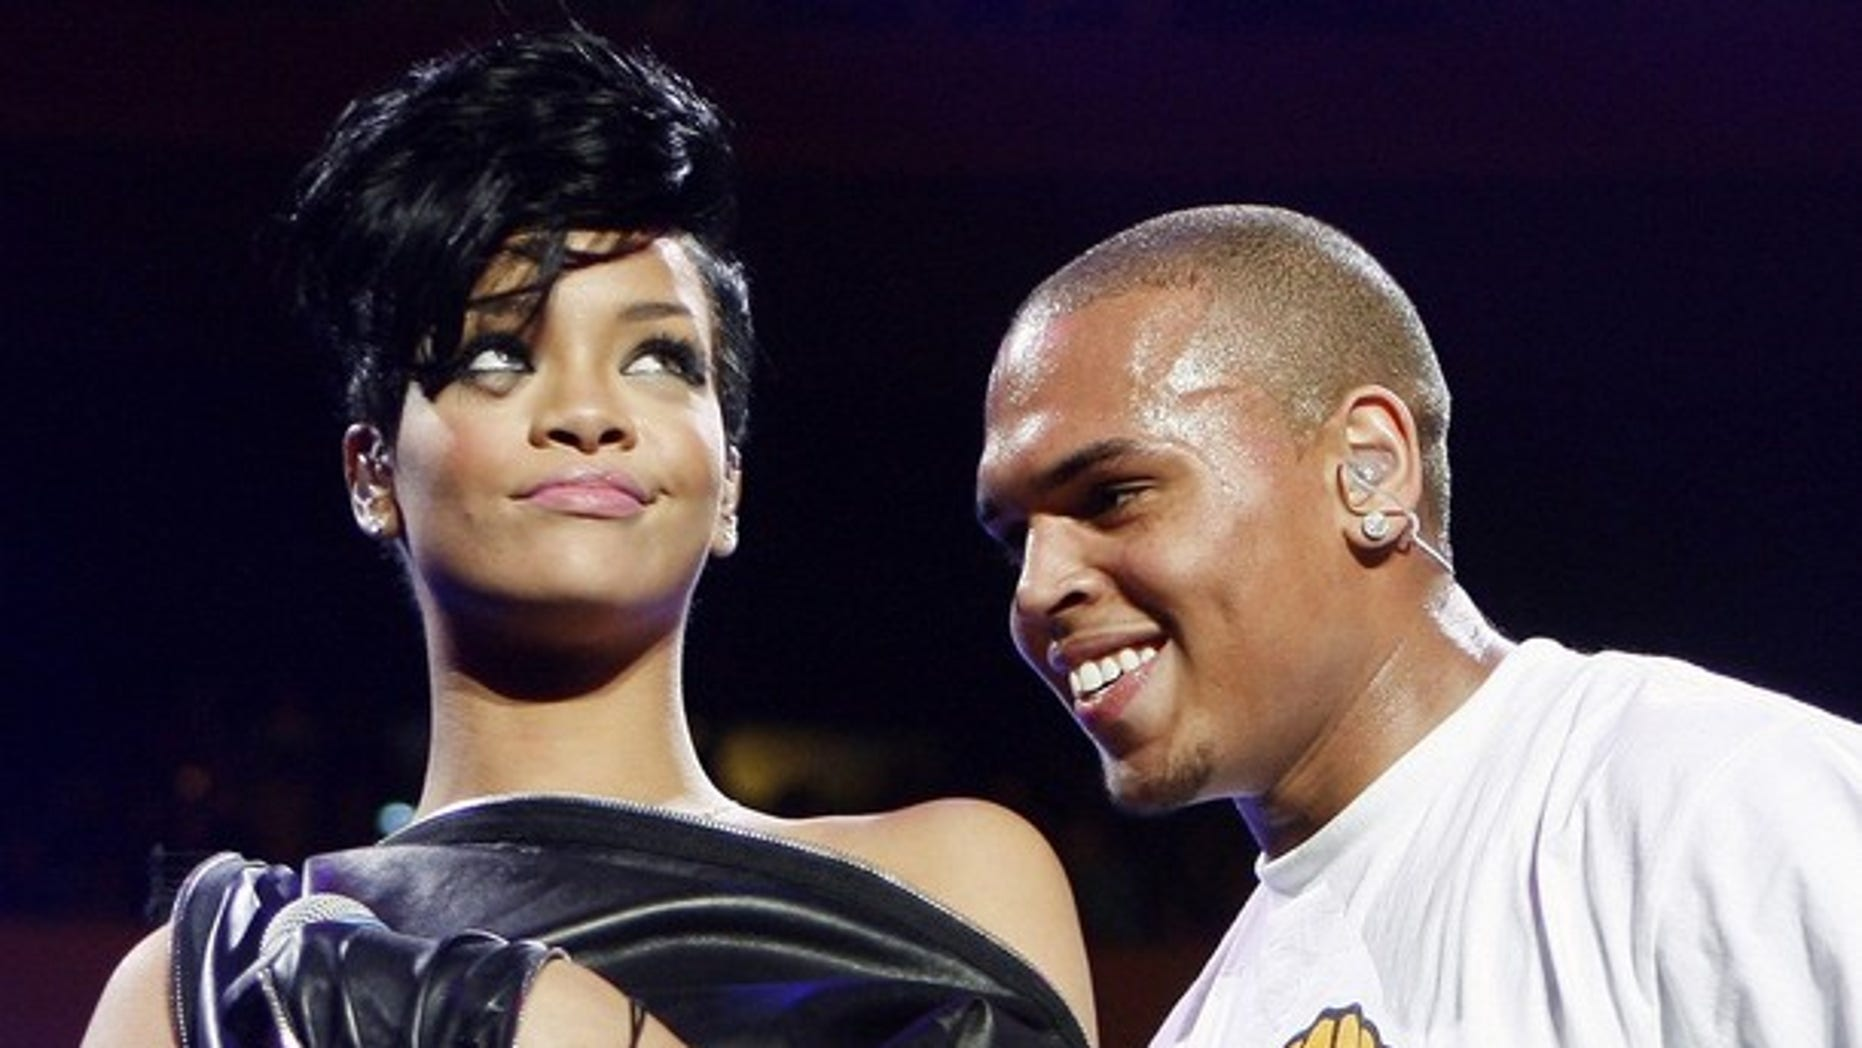 Rihanna and Chris Brown were spotted watching a Miami Heat game in New York City this past weekend, sources say.